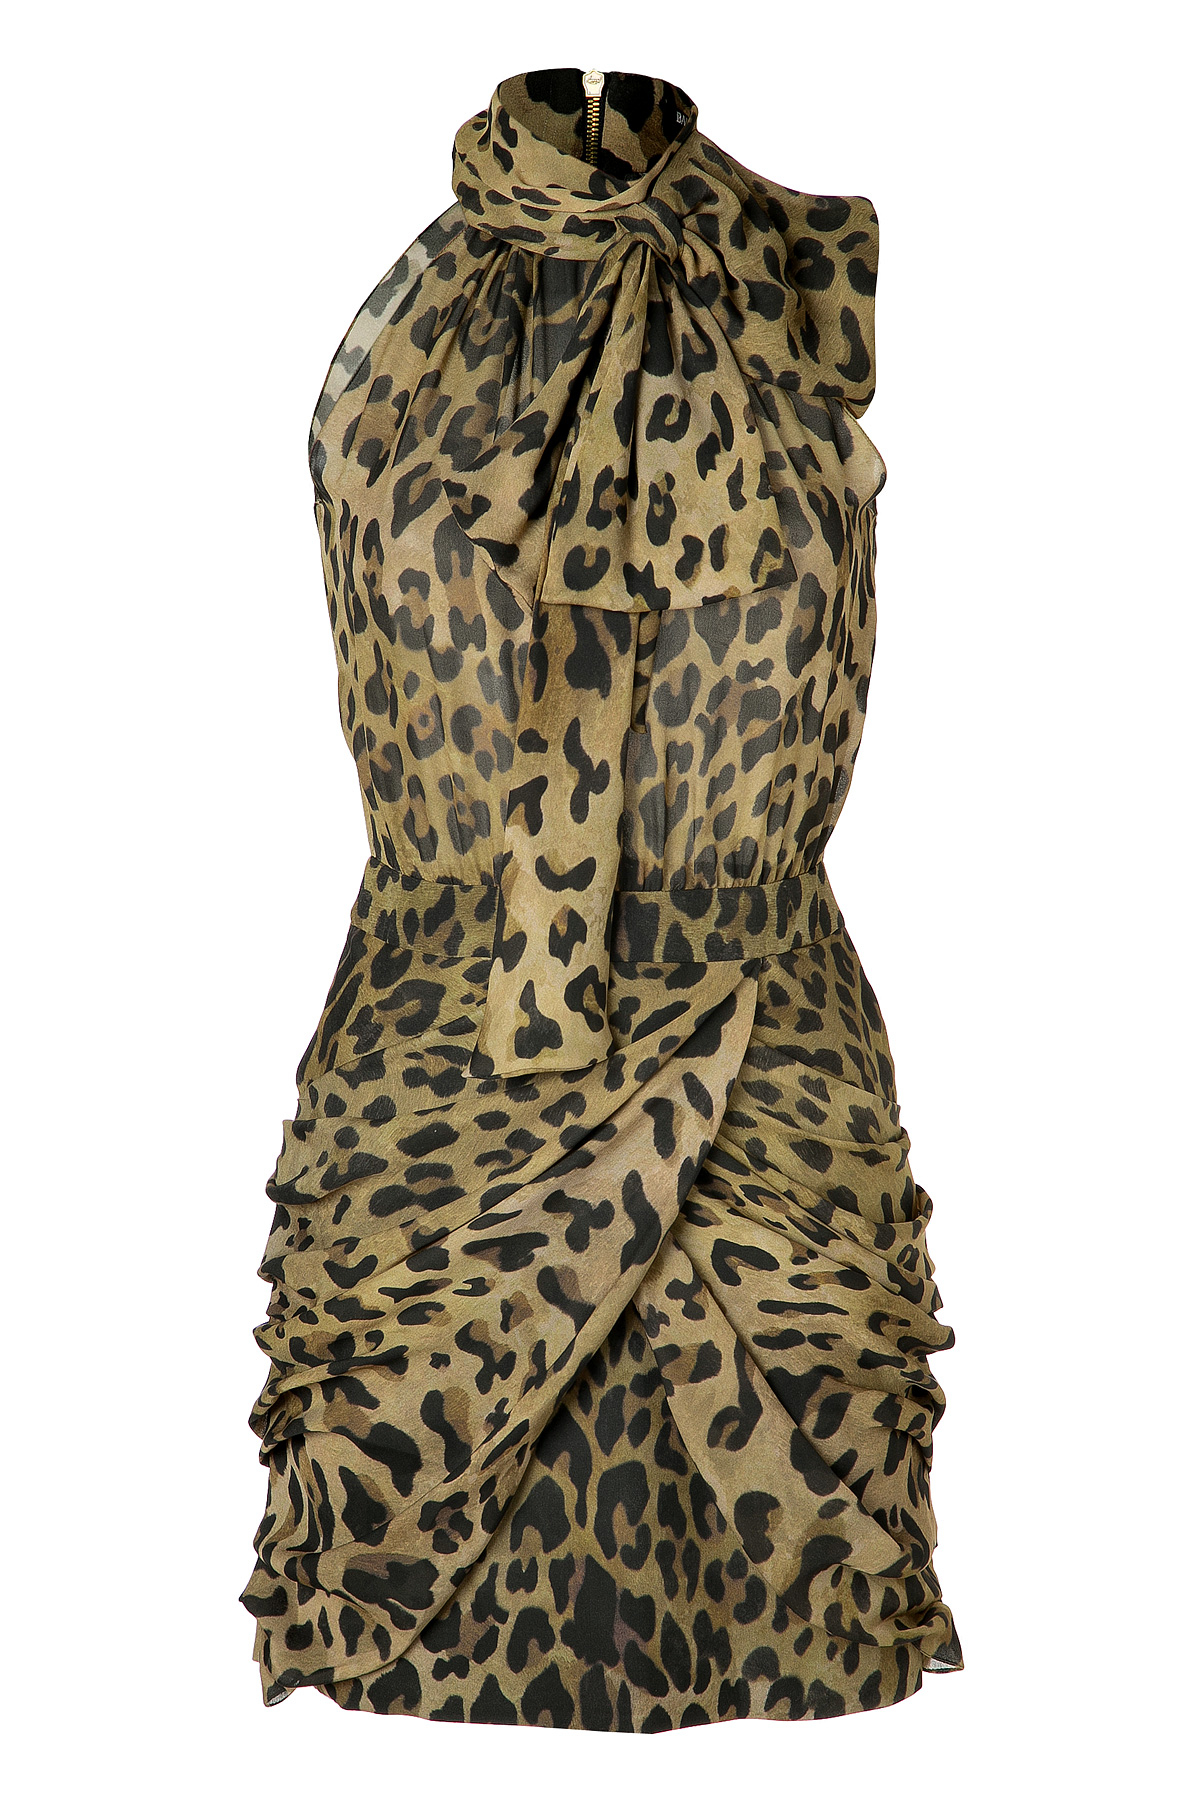 Balmain Silk Leopard Print Cocktail Dress - Lyst